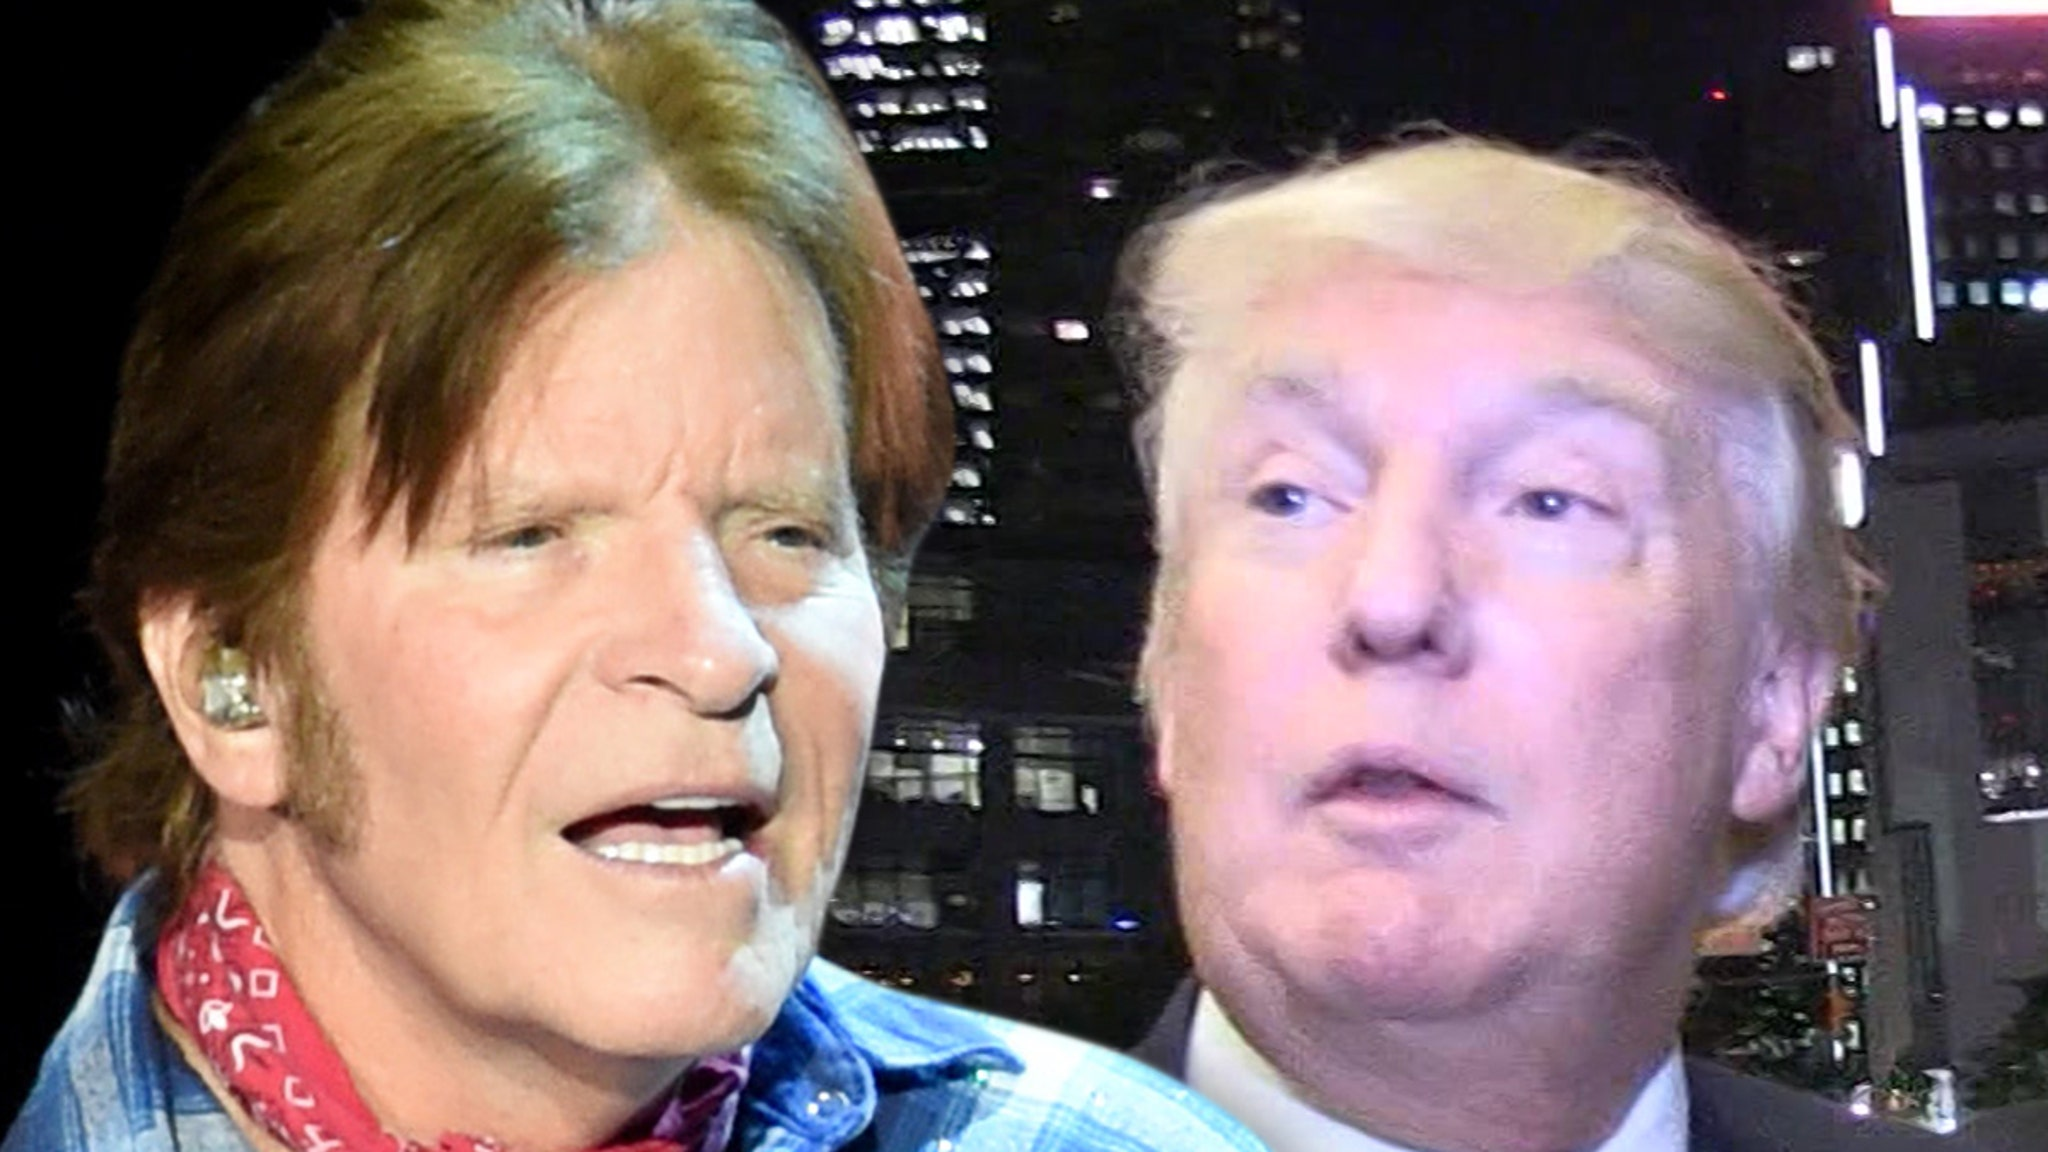 John Fogerty Demands Donald Trump Stop Playing 'Fortunate Son' - TMZ